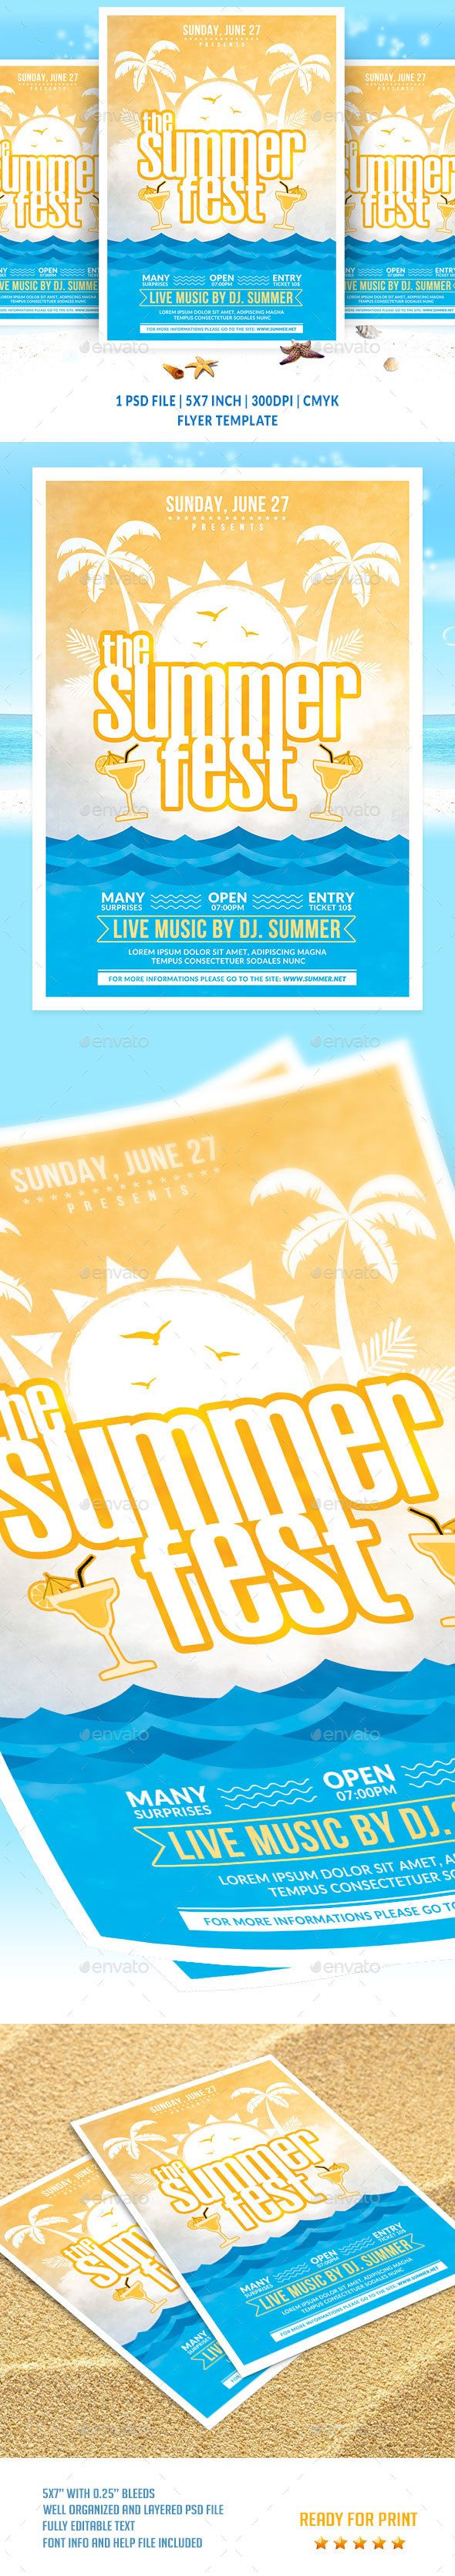 The #Summer Fest #Flyer Template - Clubs & Parties #Events Download here: https://graphicriver.net/item/the-summer-fest-flyer-template/20144865?ref=alena994